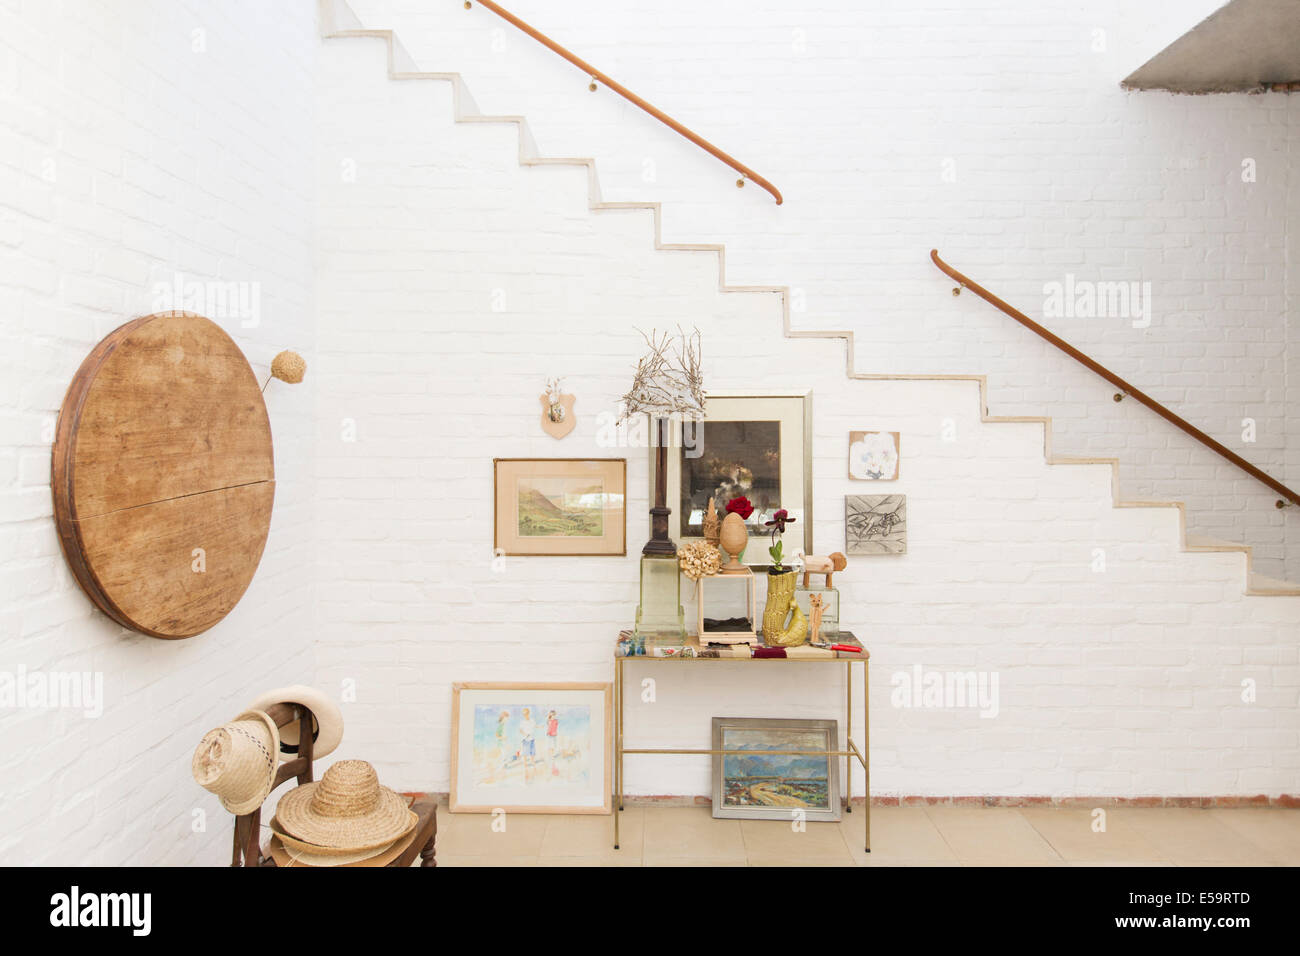 Side table and wall hangings by staircase - Stock Image